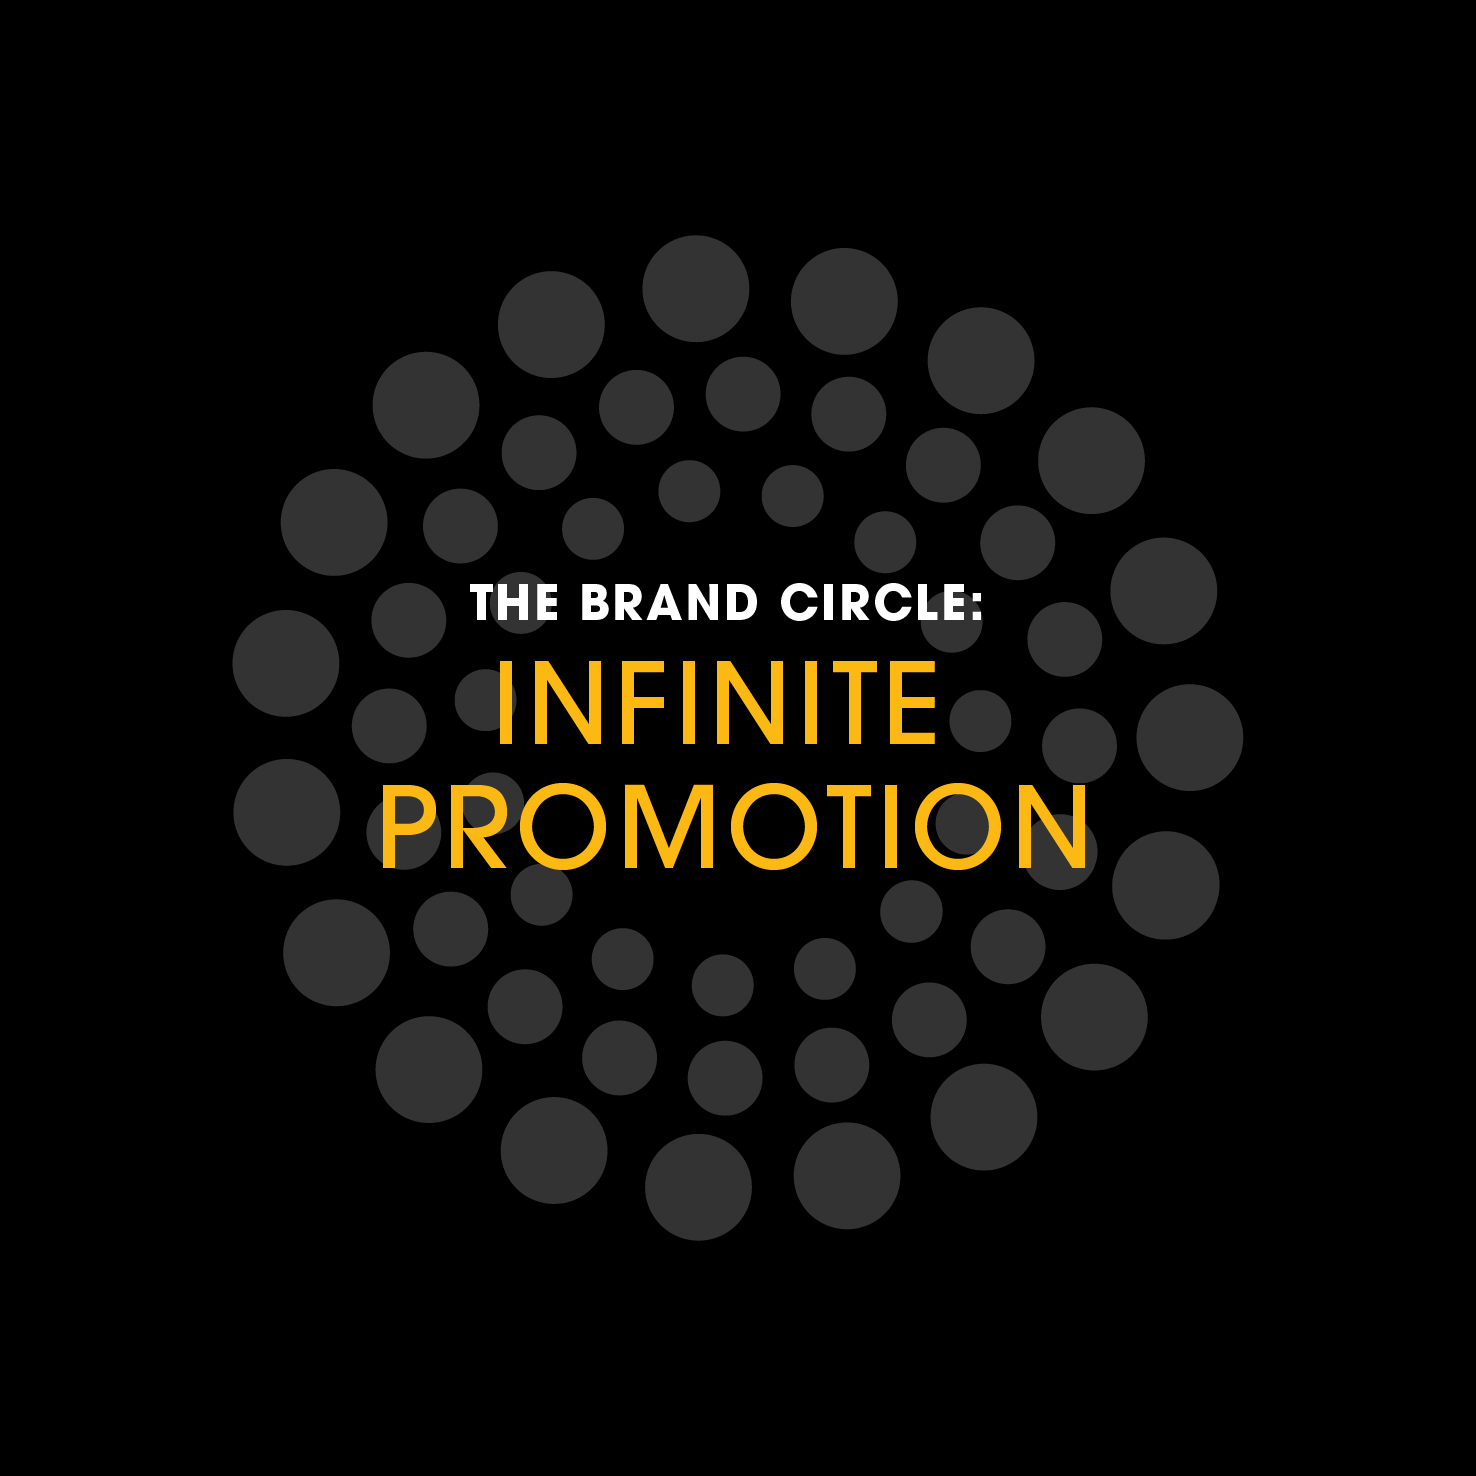 The Brand Circle: Infinite Promotion